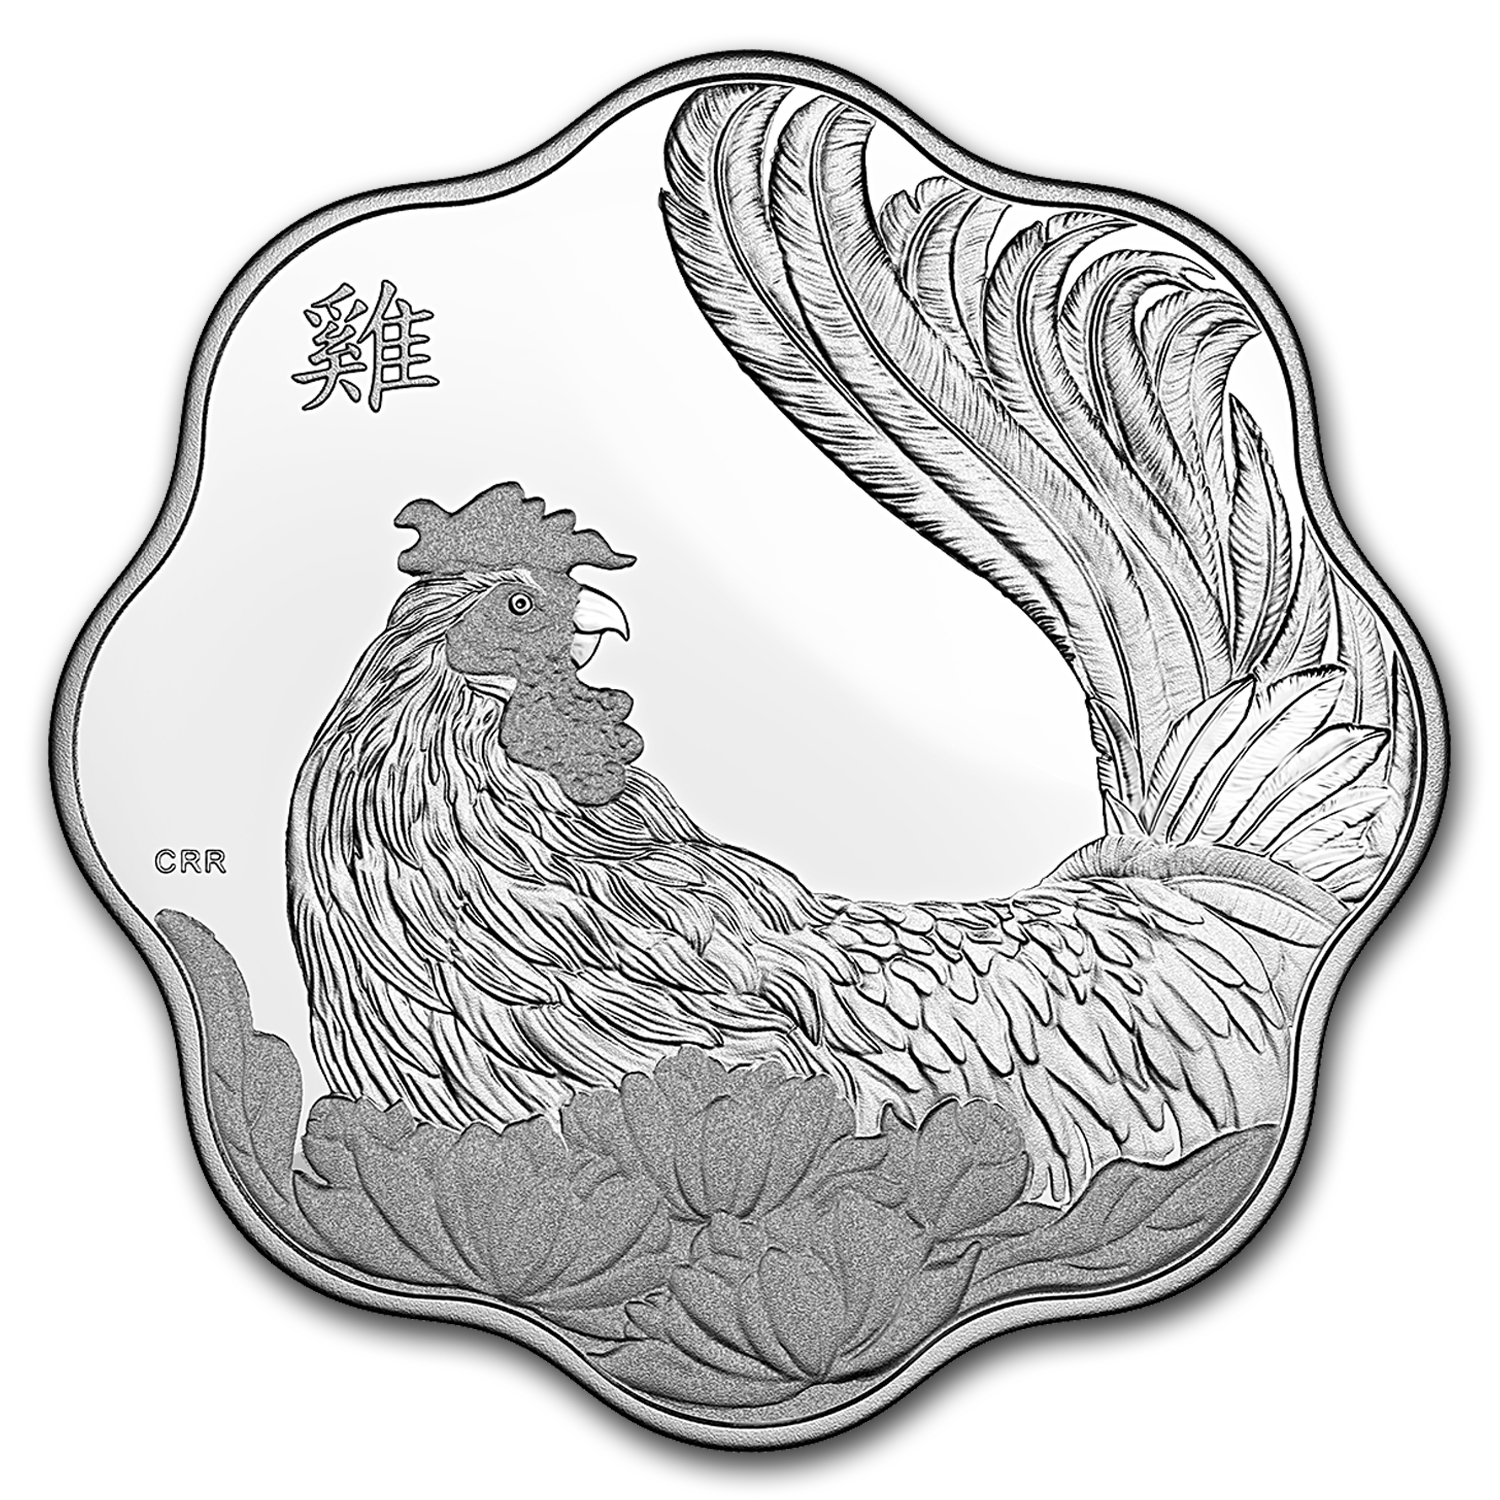 2017 Canada Silver $15 Lunar Lotus Rooster Proof (w/Box & COA)